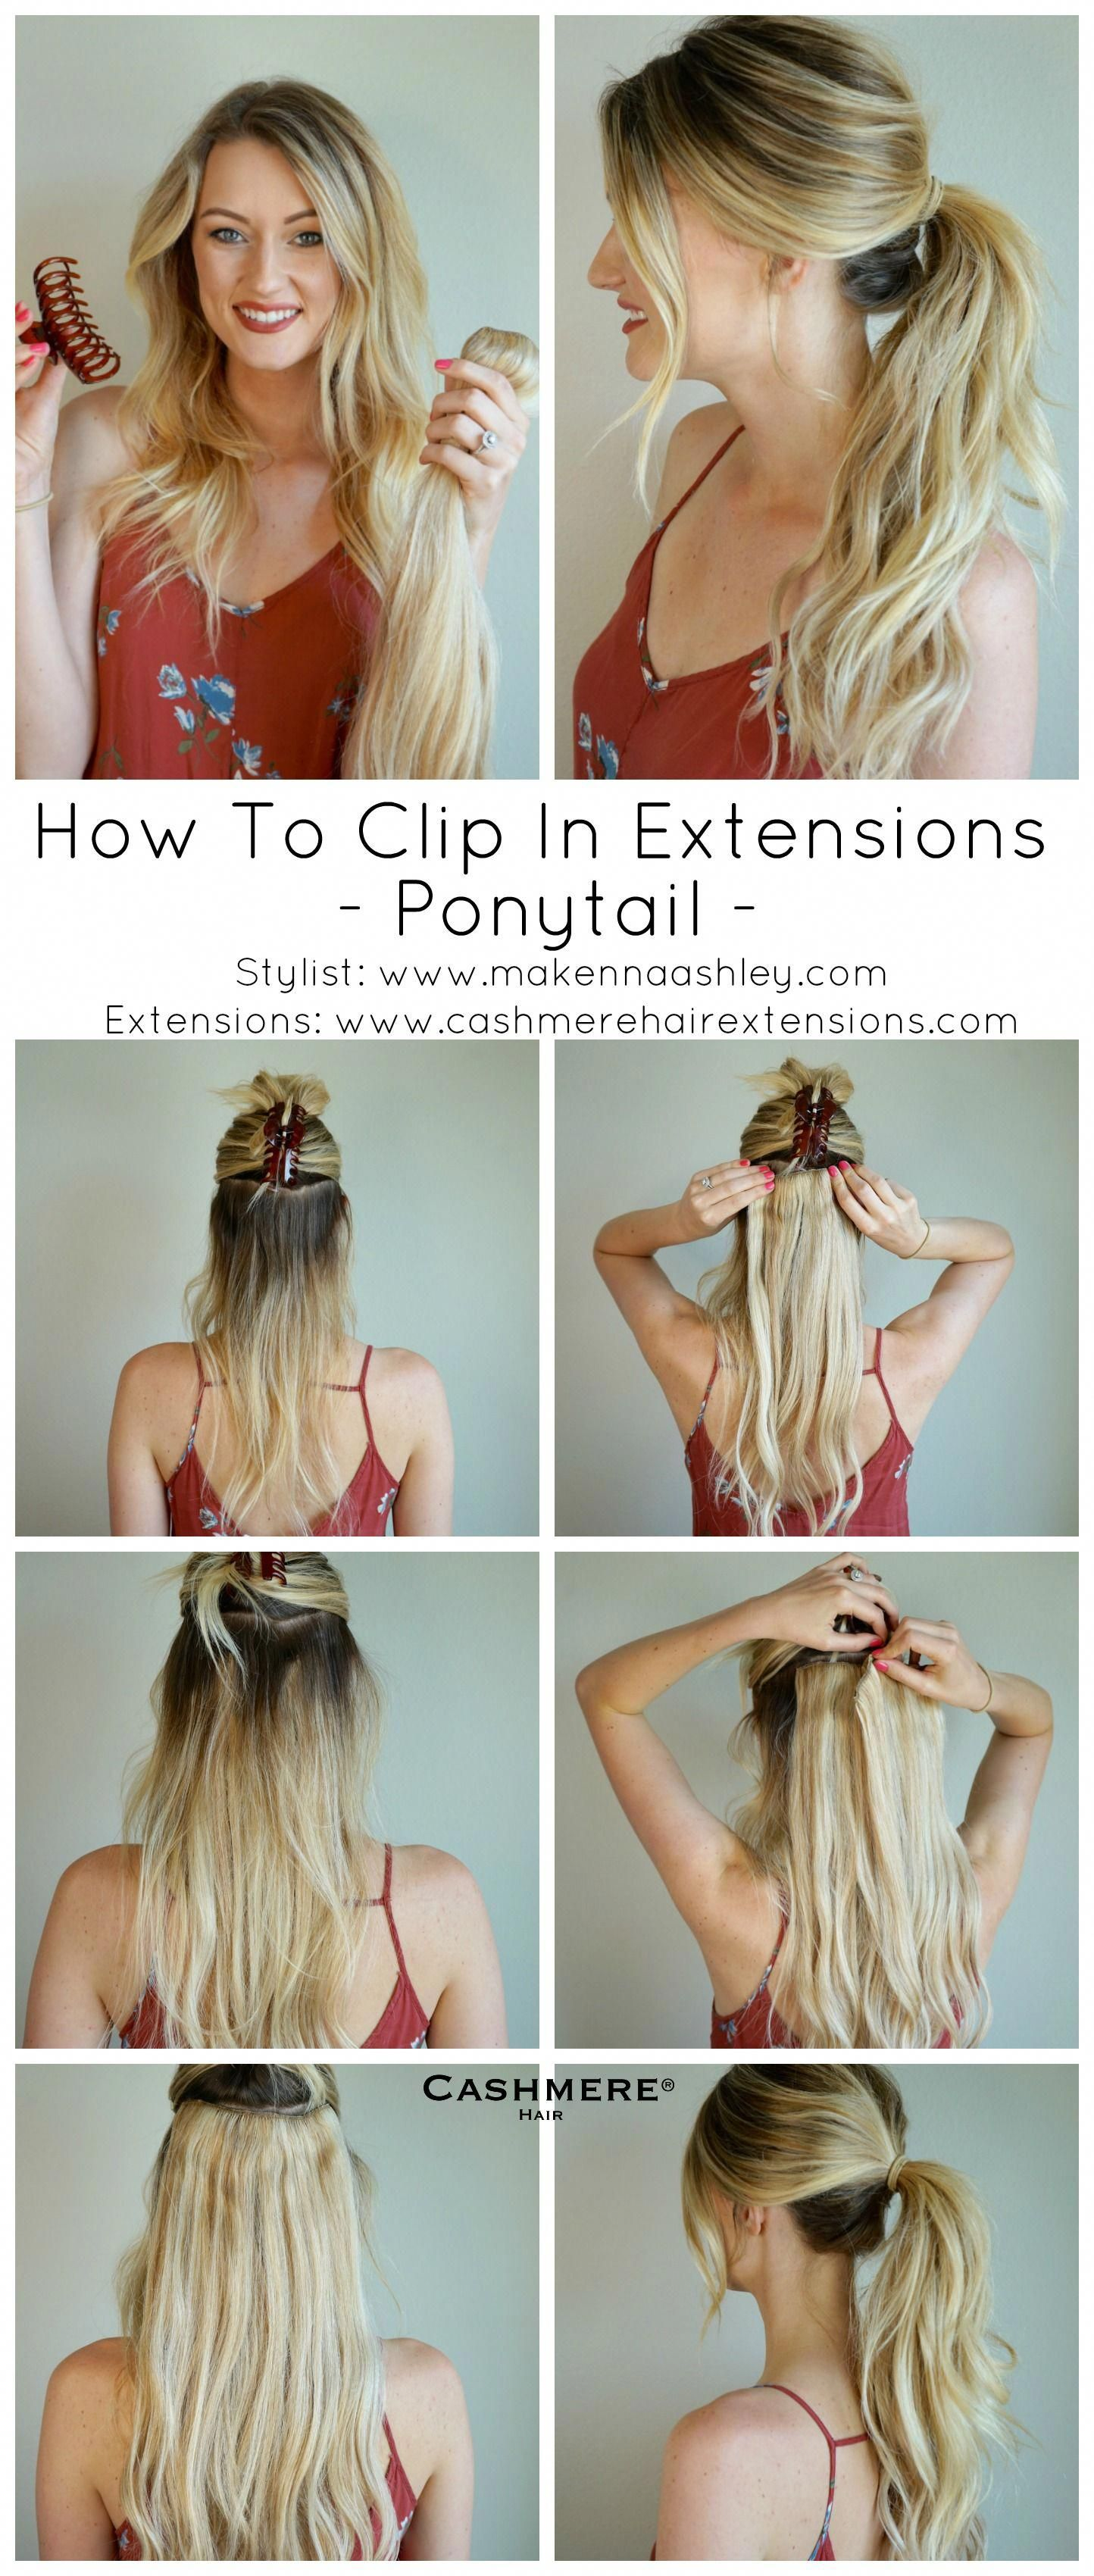 Here is a quick tutorial on how to clip in your extensions